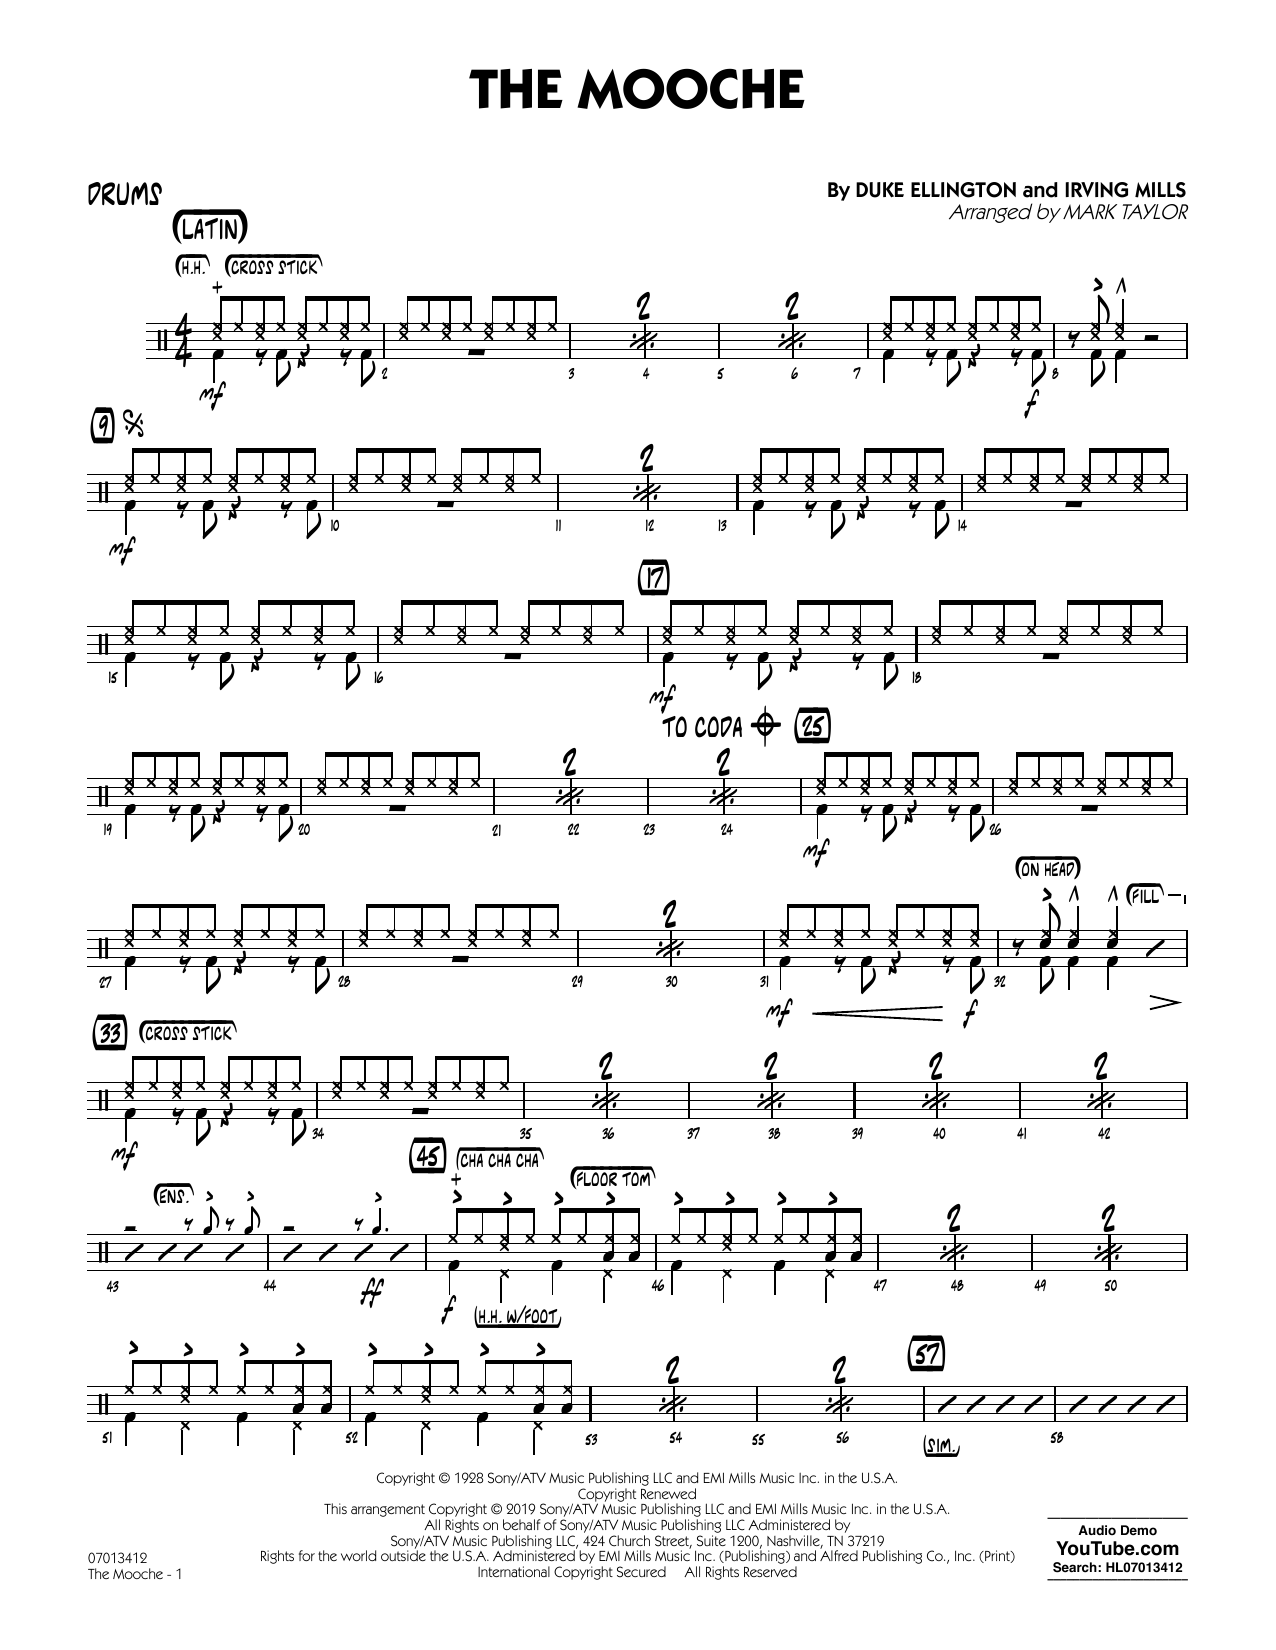 Duke Ellington The Mooche (arr. Mark Taylor) - Drums sheet music notes and chords. Download Printable PDF.